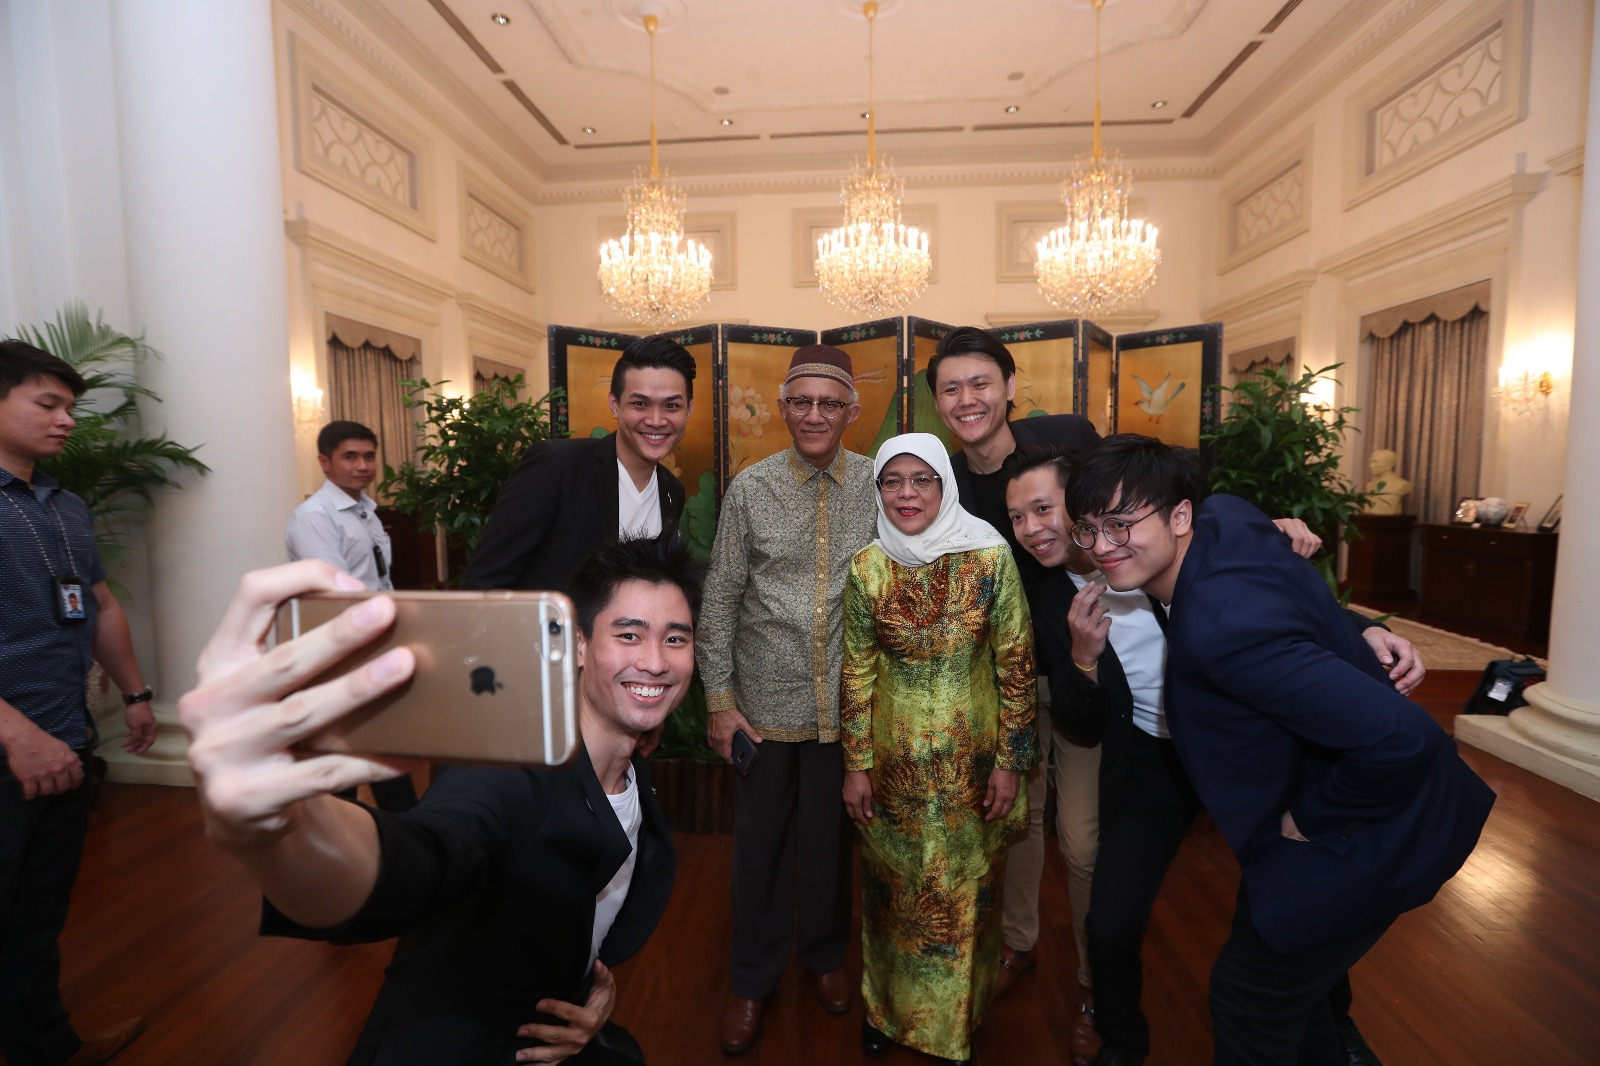 Magicians Selfie with President